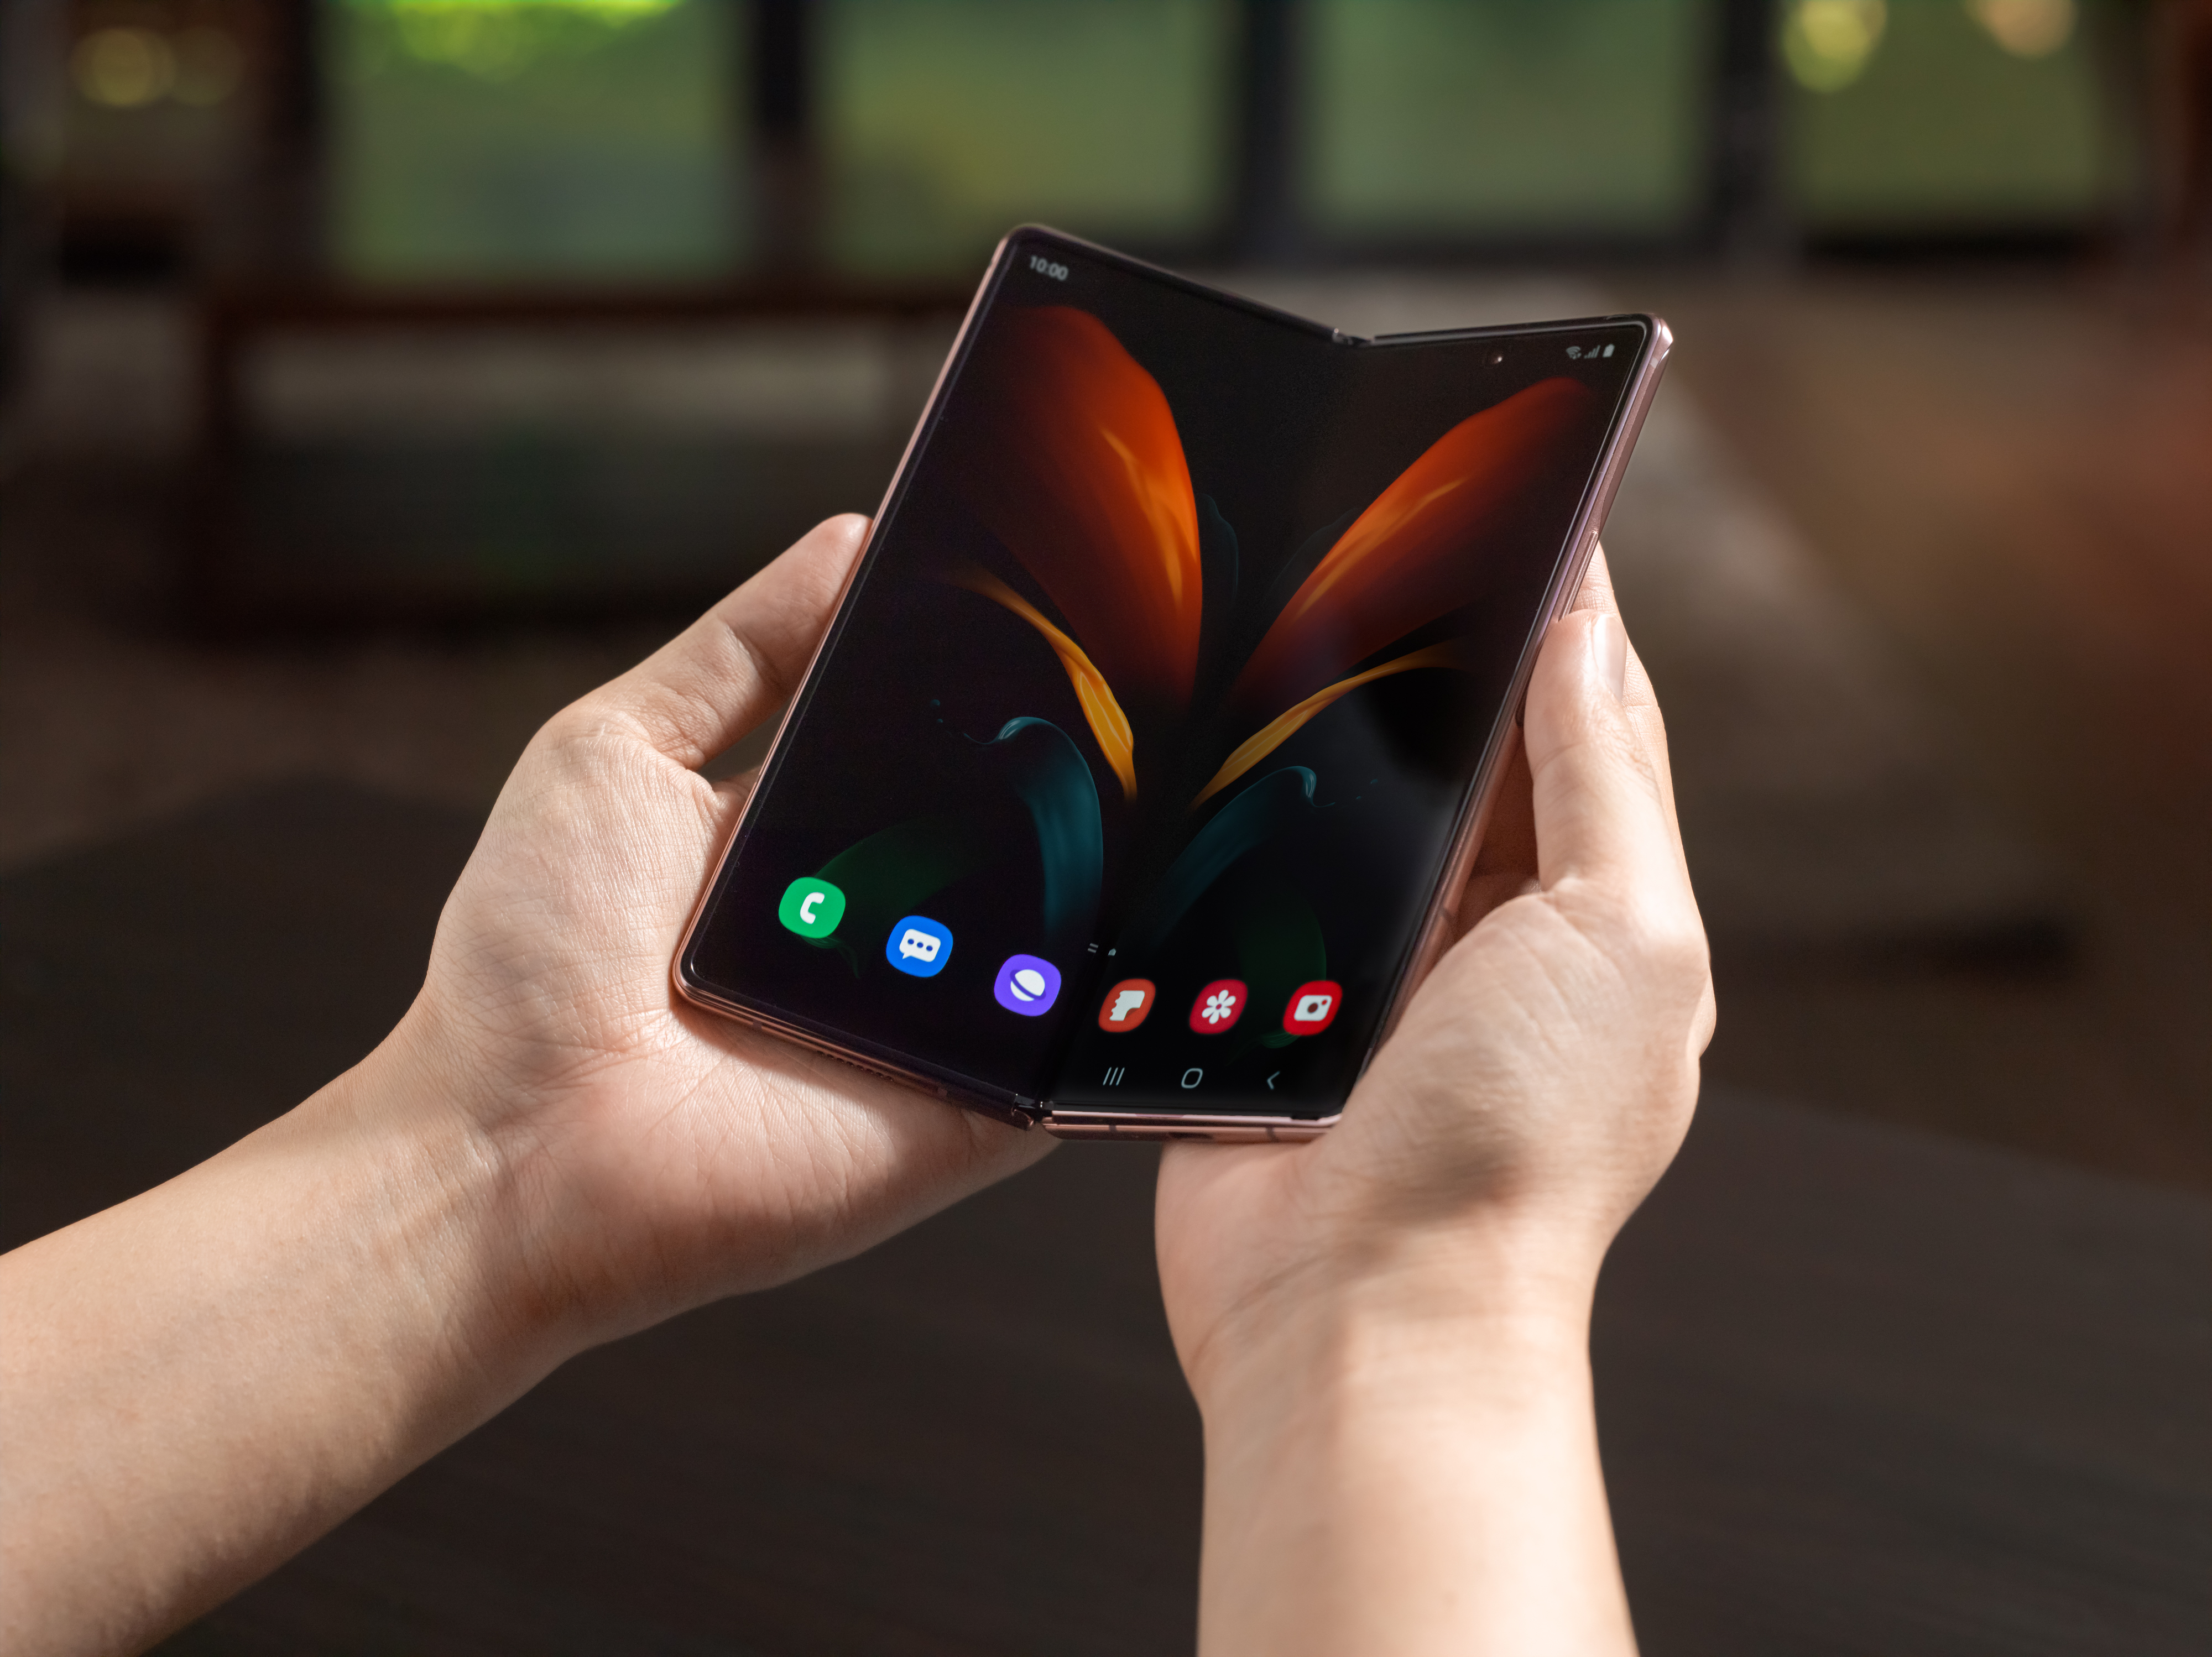 Samsung Galaxy Z Fold2 hands-on review